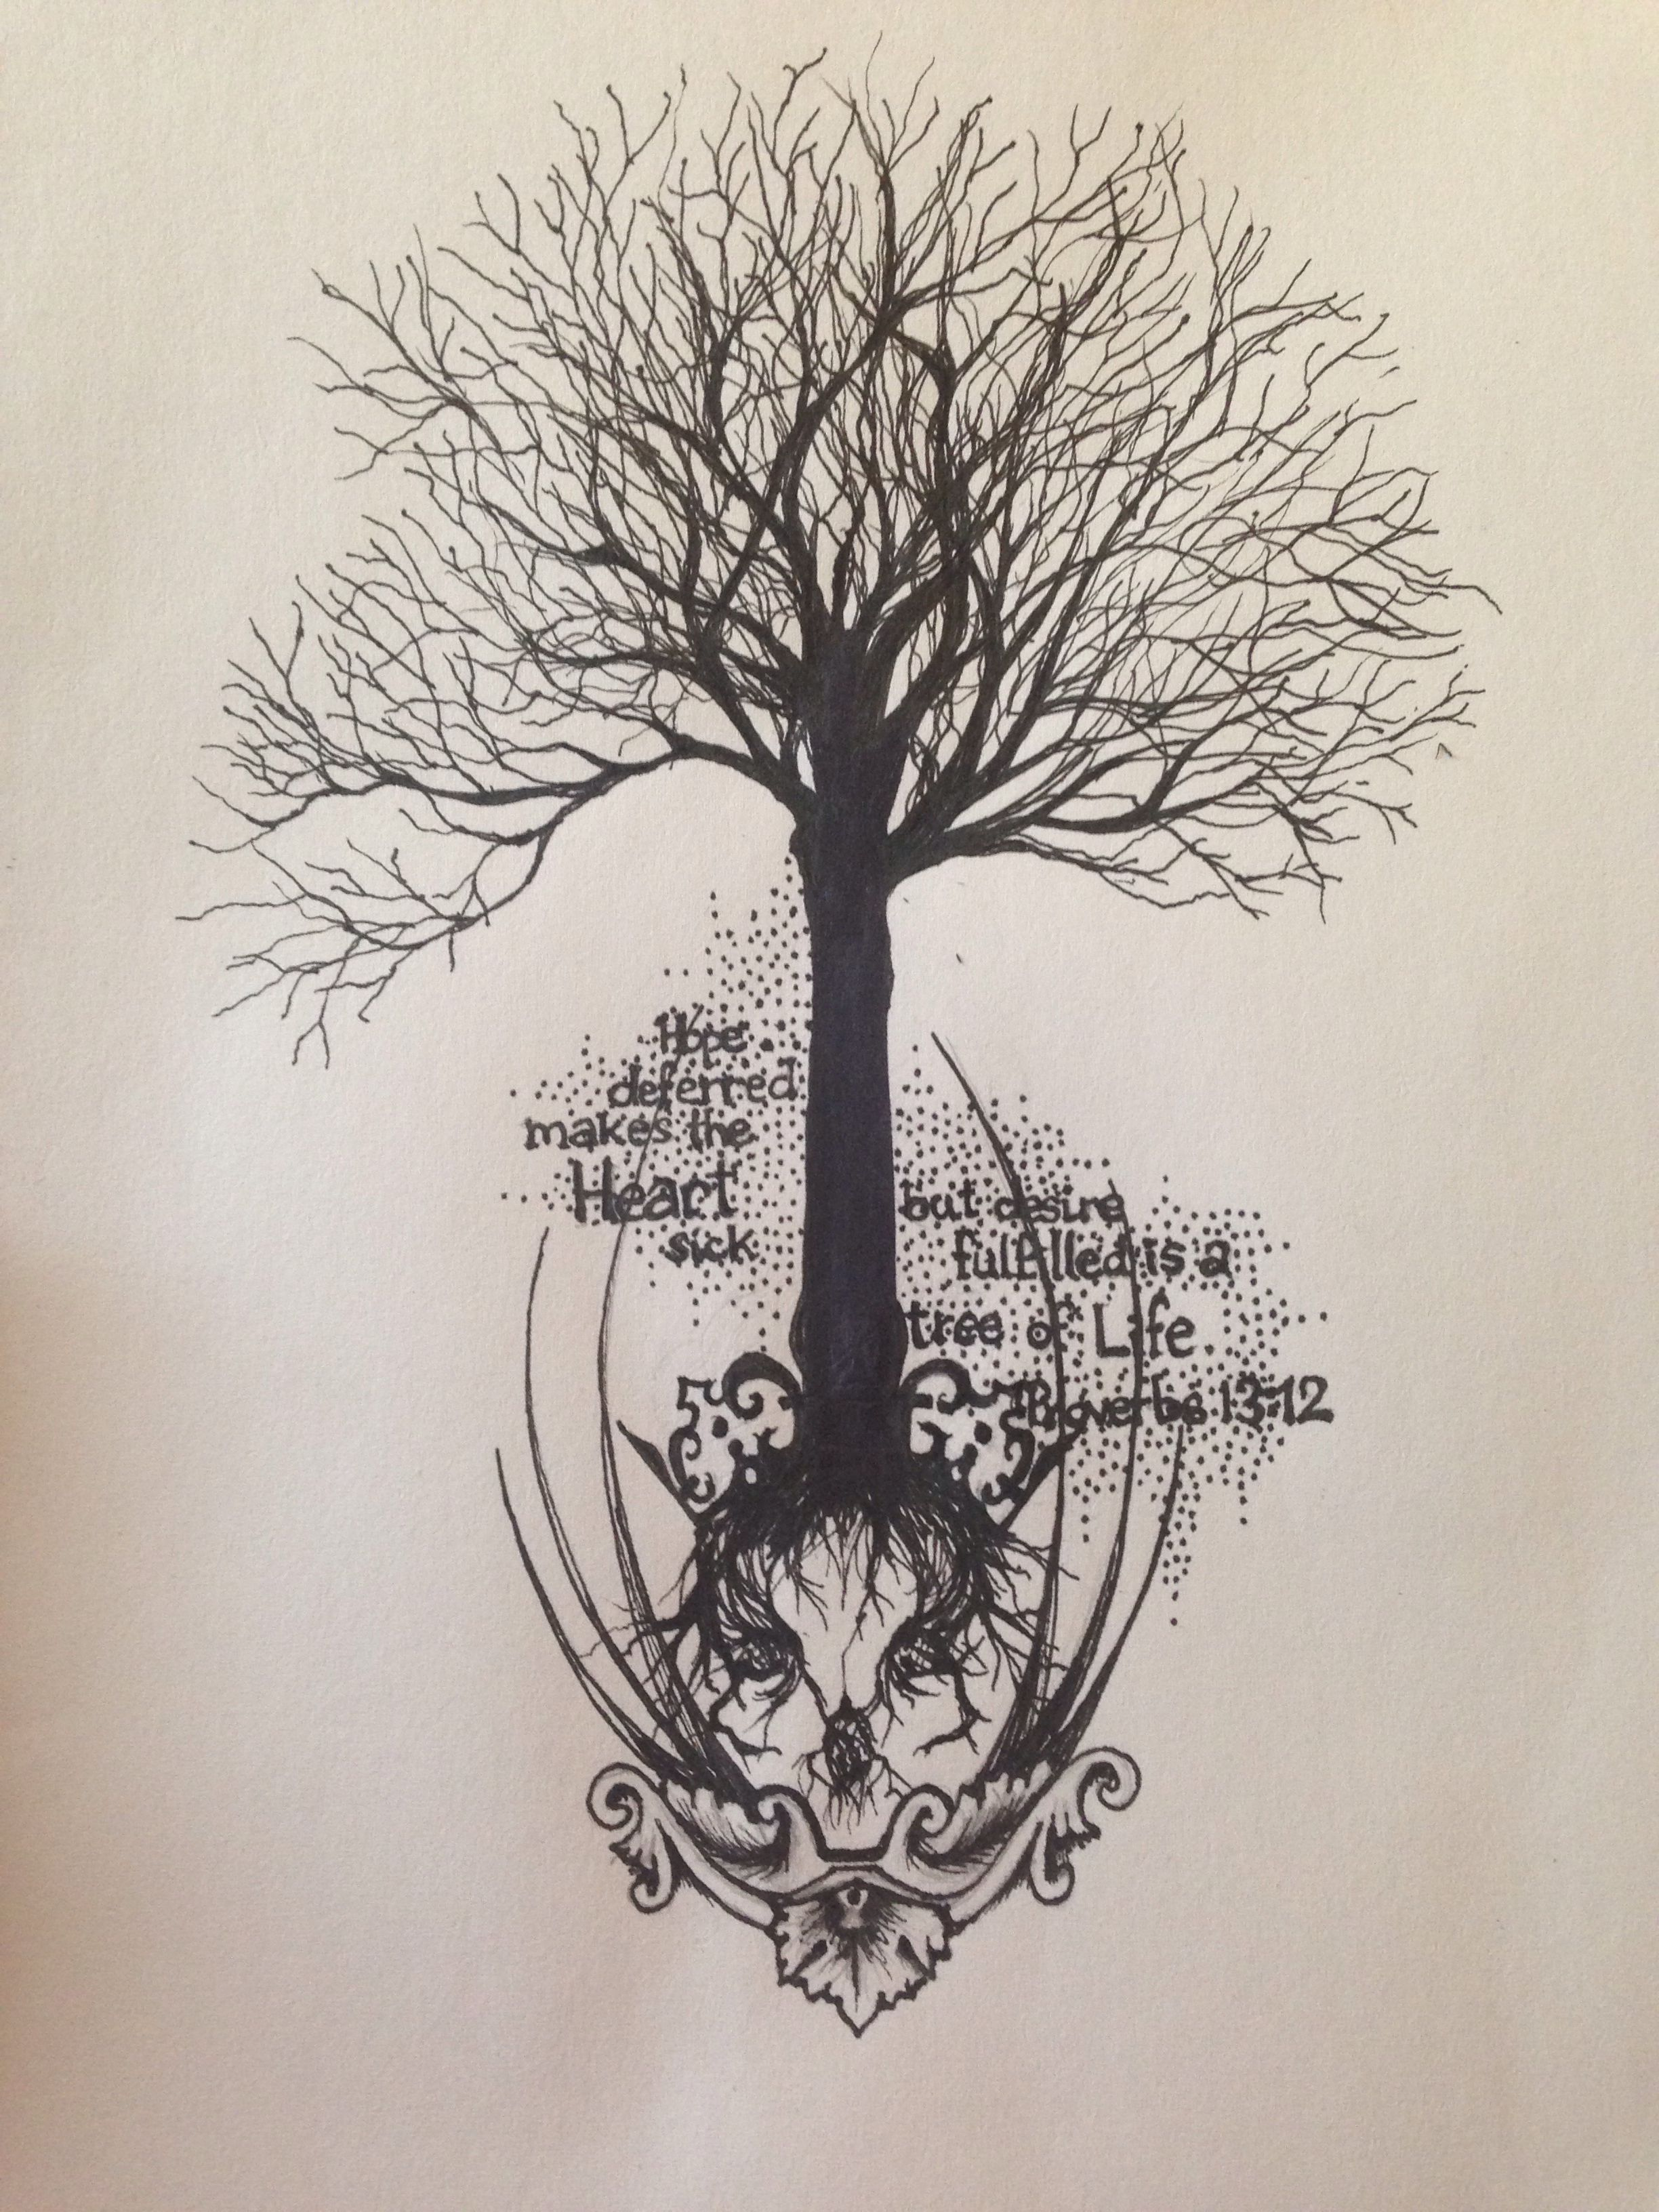 Tattoo sketch for my forearm skull tree tattoo tattoos for Forearm tattoo sketches